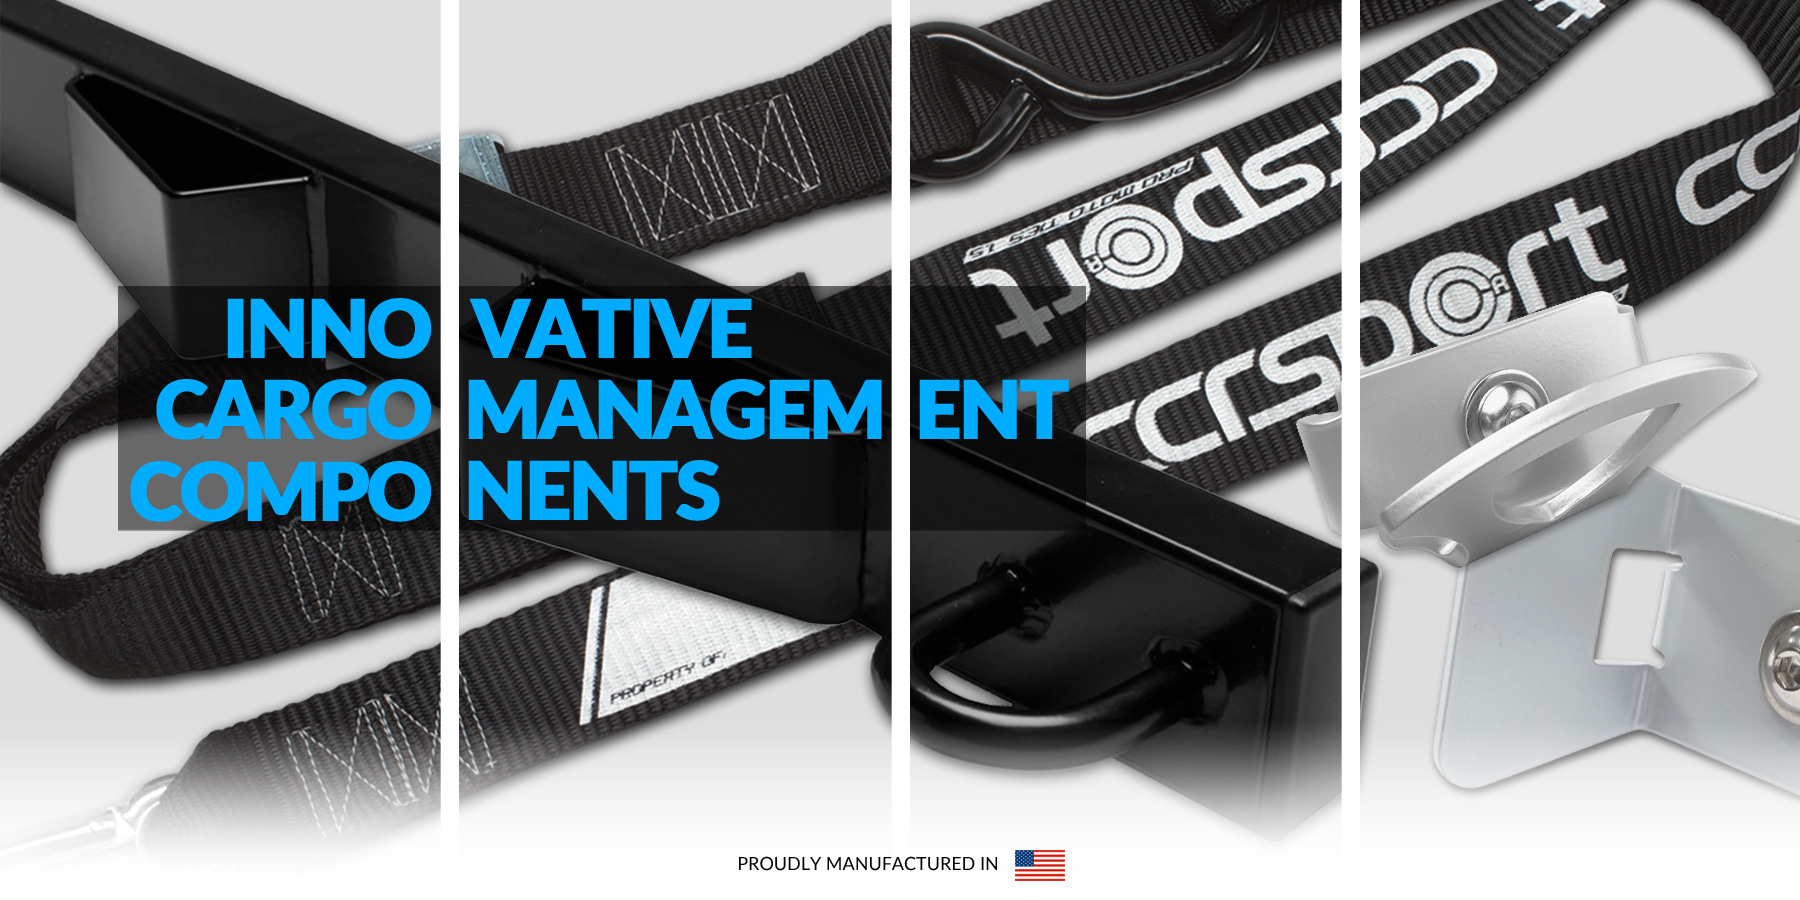 CCR Sport | Innovative cargo management components for trucks, vans and trailers.